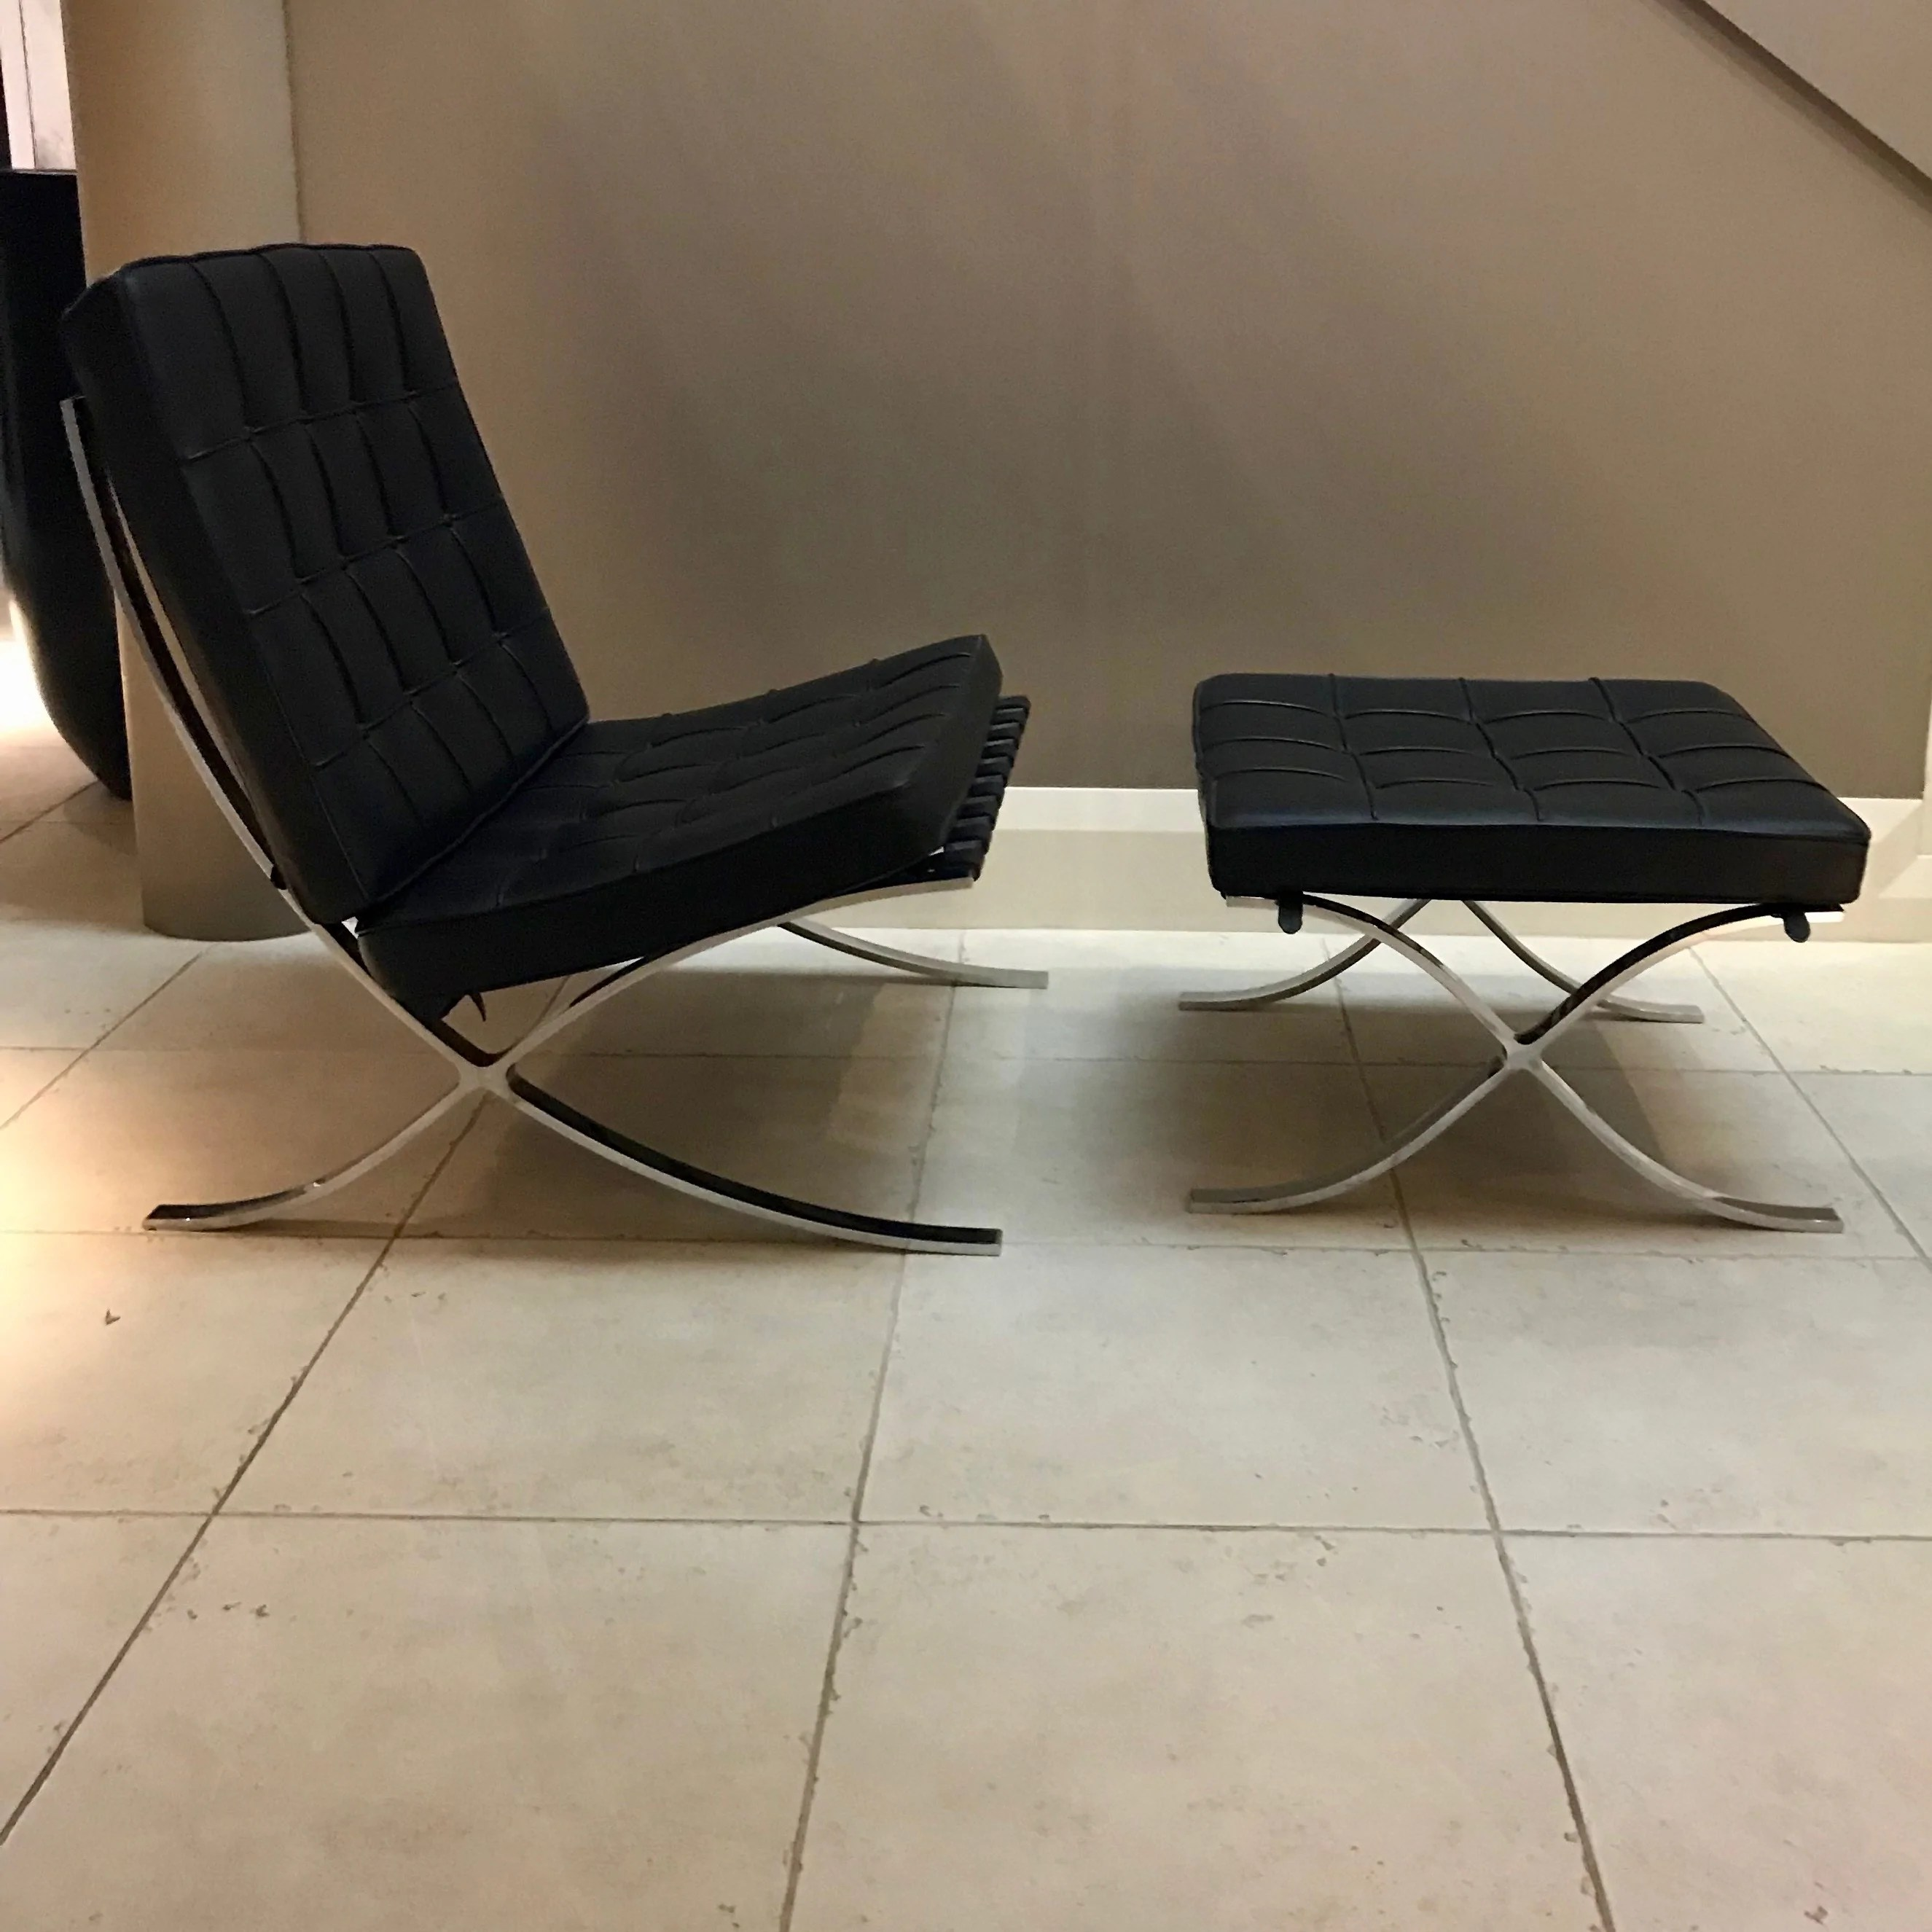 Barcelona Sessel Knoll Barcelona Chair With Footstool By Ludwig Mies Van Der Rohe For Knoll